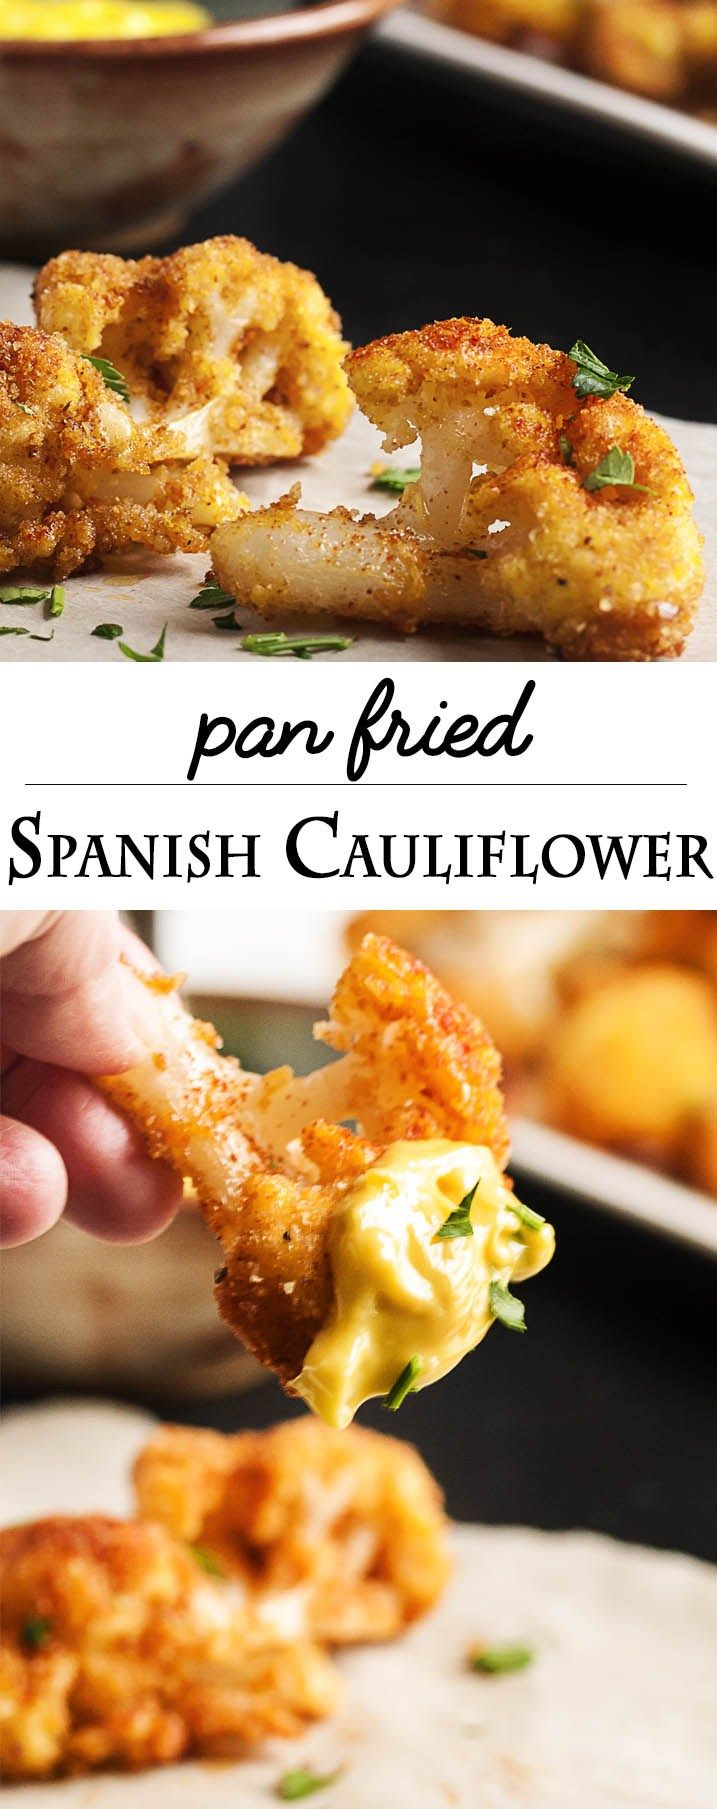 Pan Fried Spanish Cauliflower Tapas - These breaded fried cauliflower bites are a simple and tasty tapas dish you should make at your next get-together! Just a quick dunking in egg and breadcrumbs and (Baking Cauliflower Bacon)